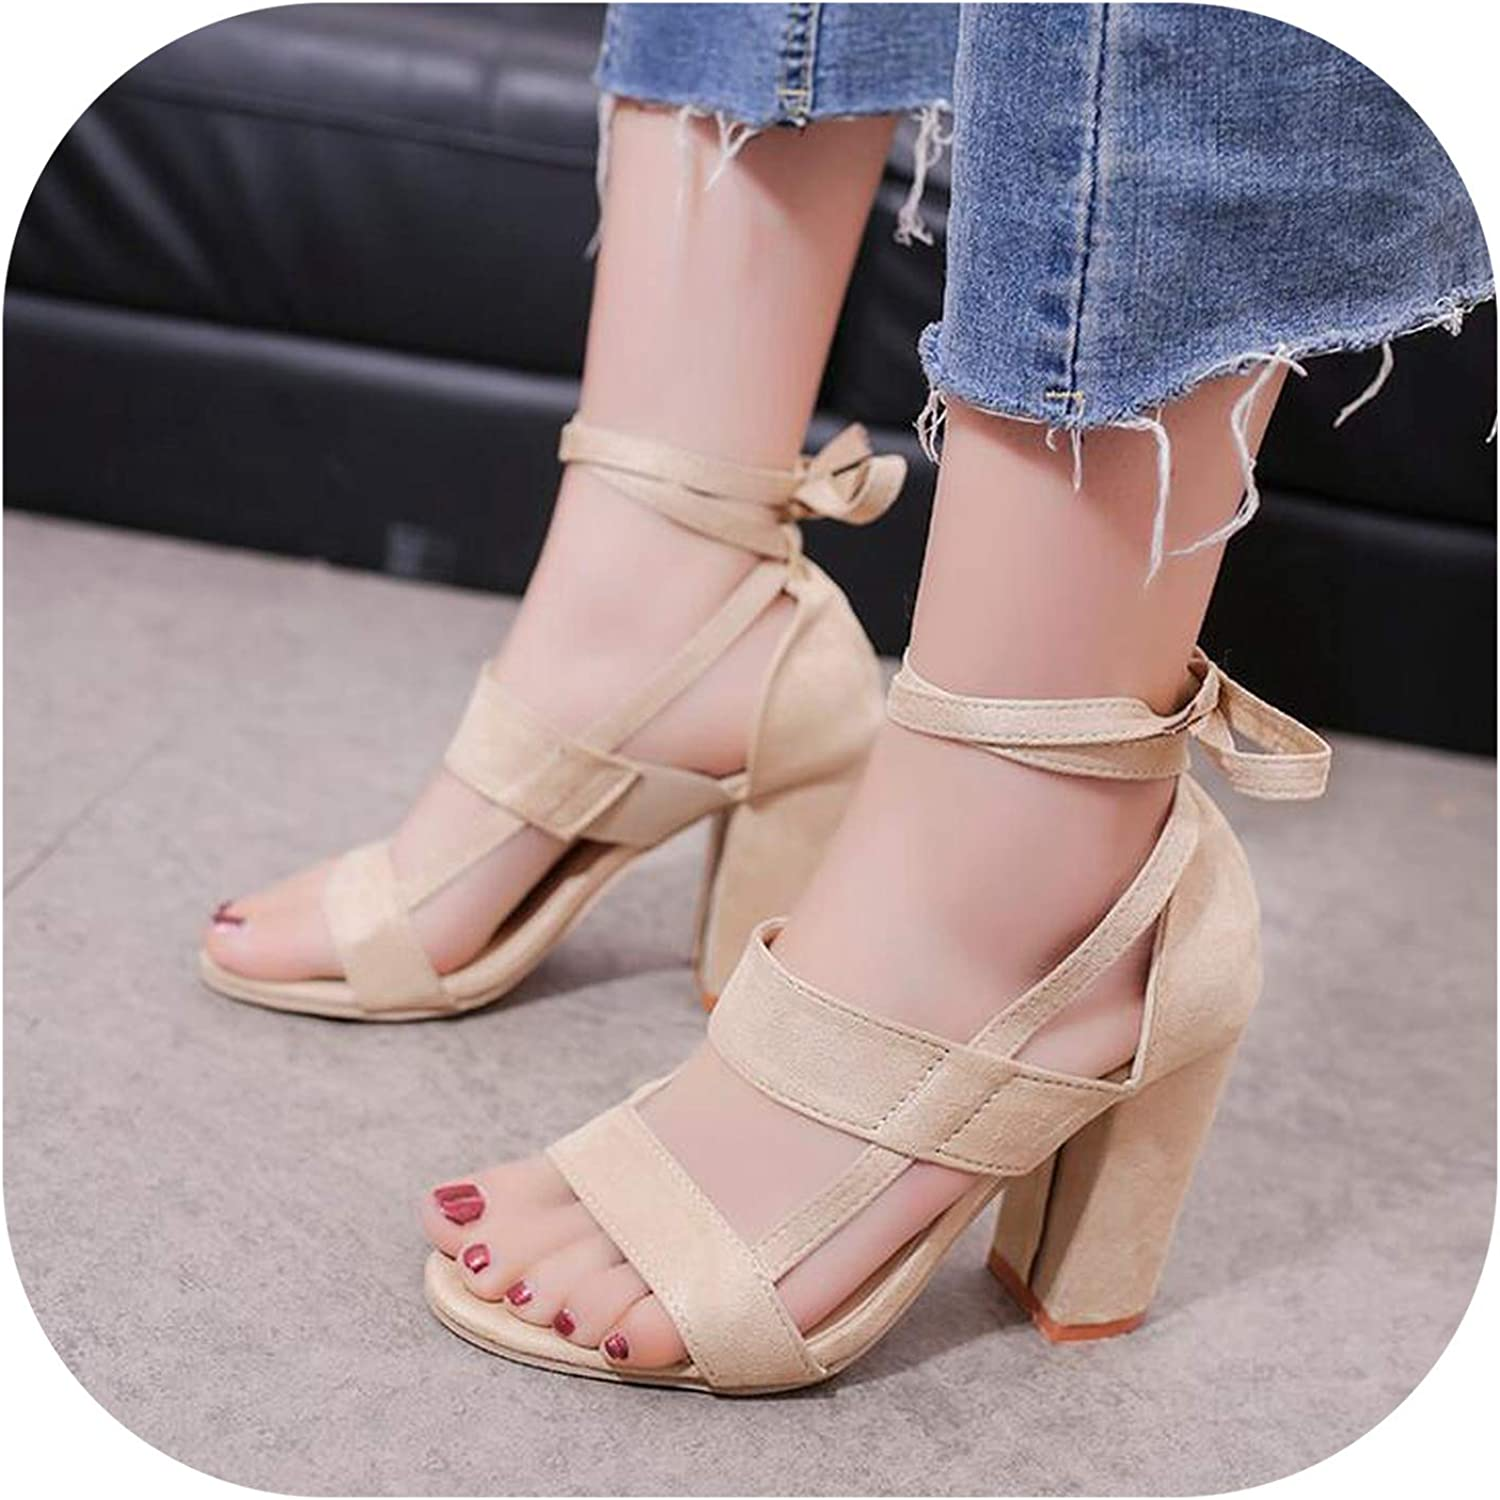 Alerghrg Square Heels Fish Mouth Cross Straps Thick with Super High Heel Sandals Size 34-43 d903